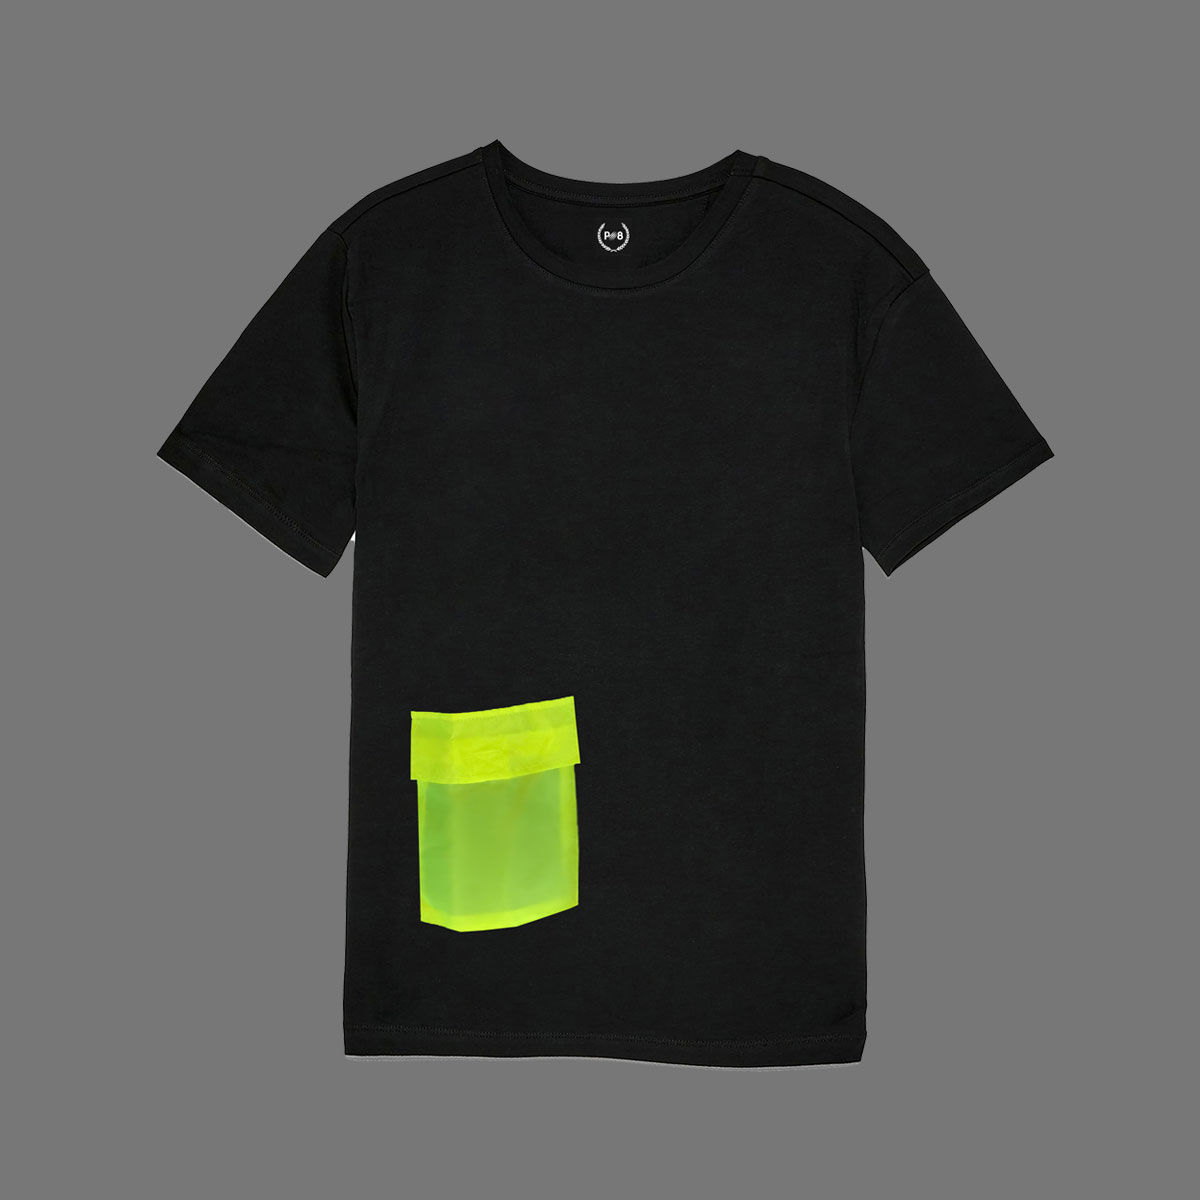 T-shirt with neon green pocket - Black